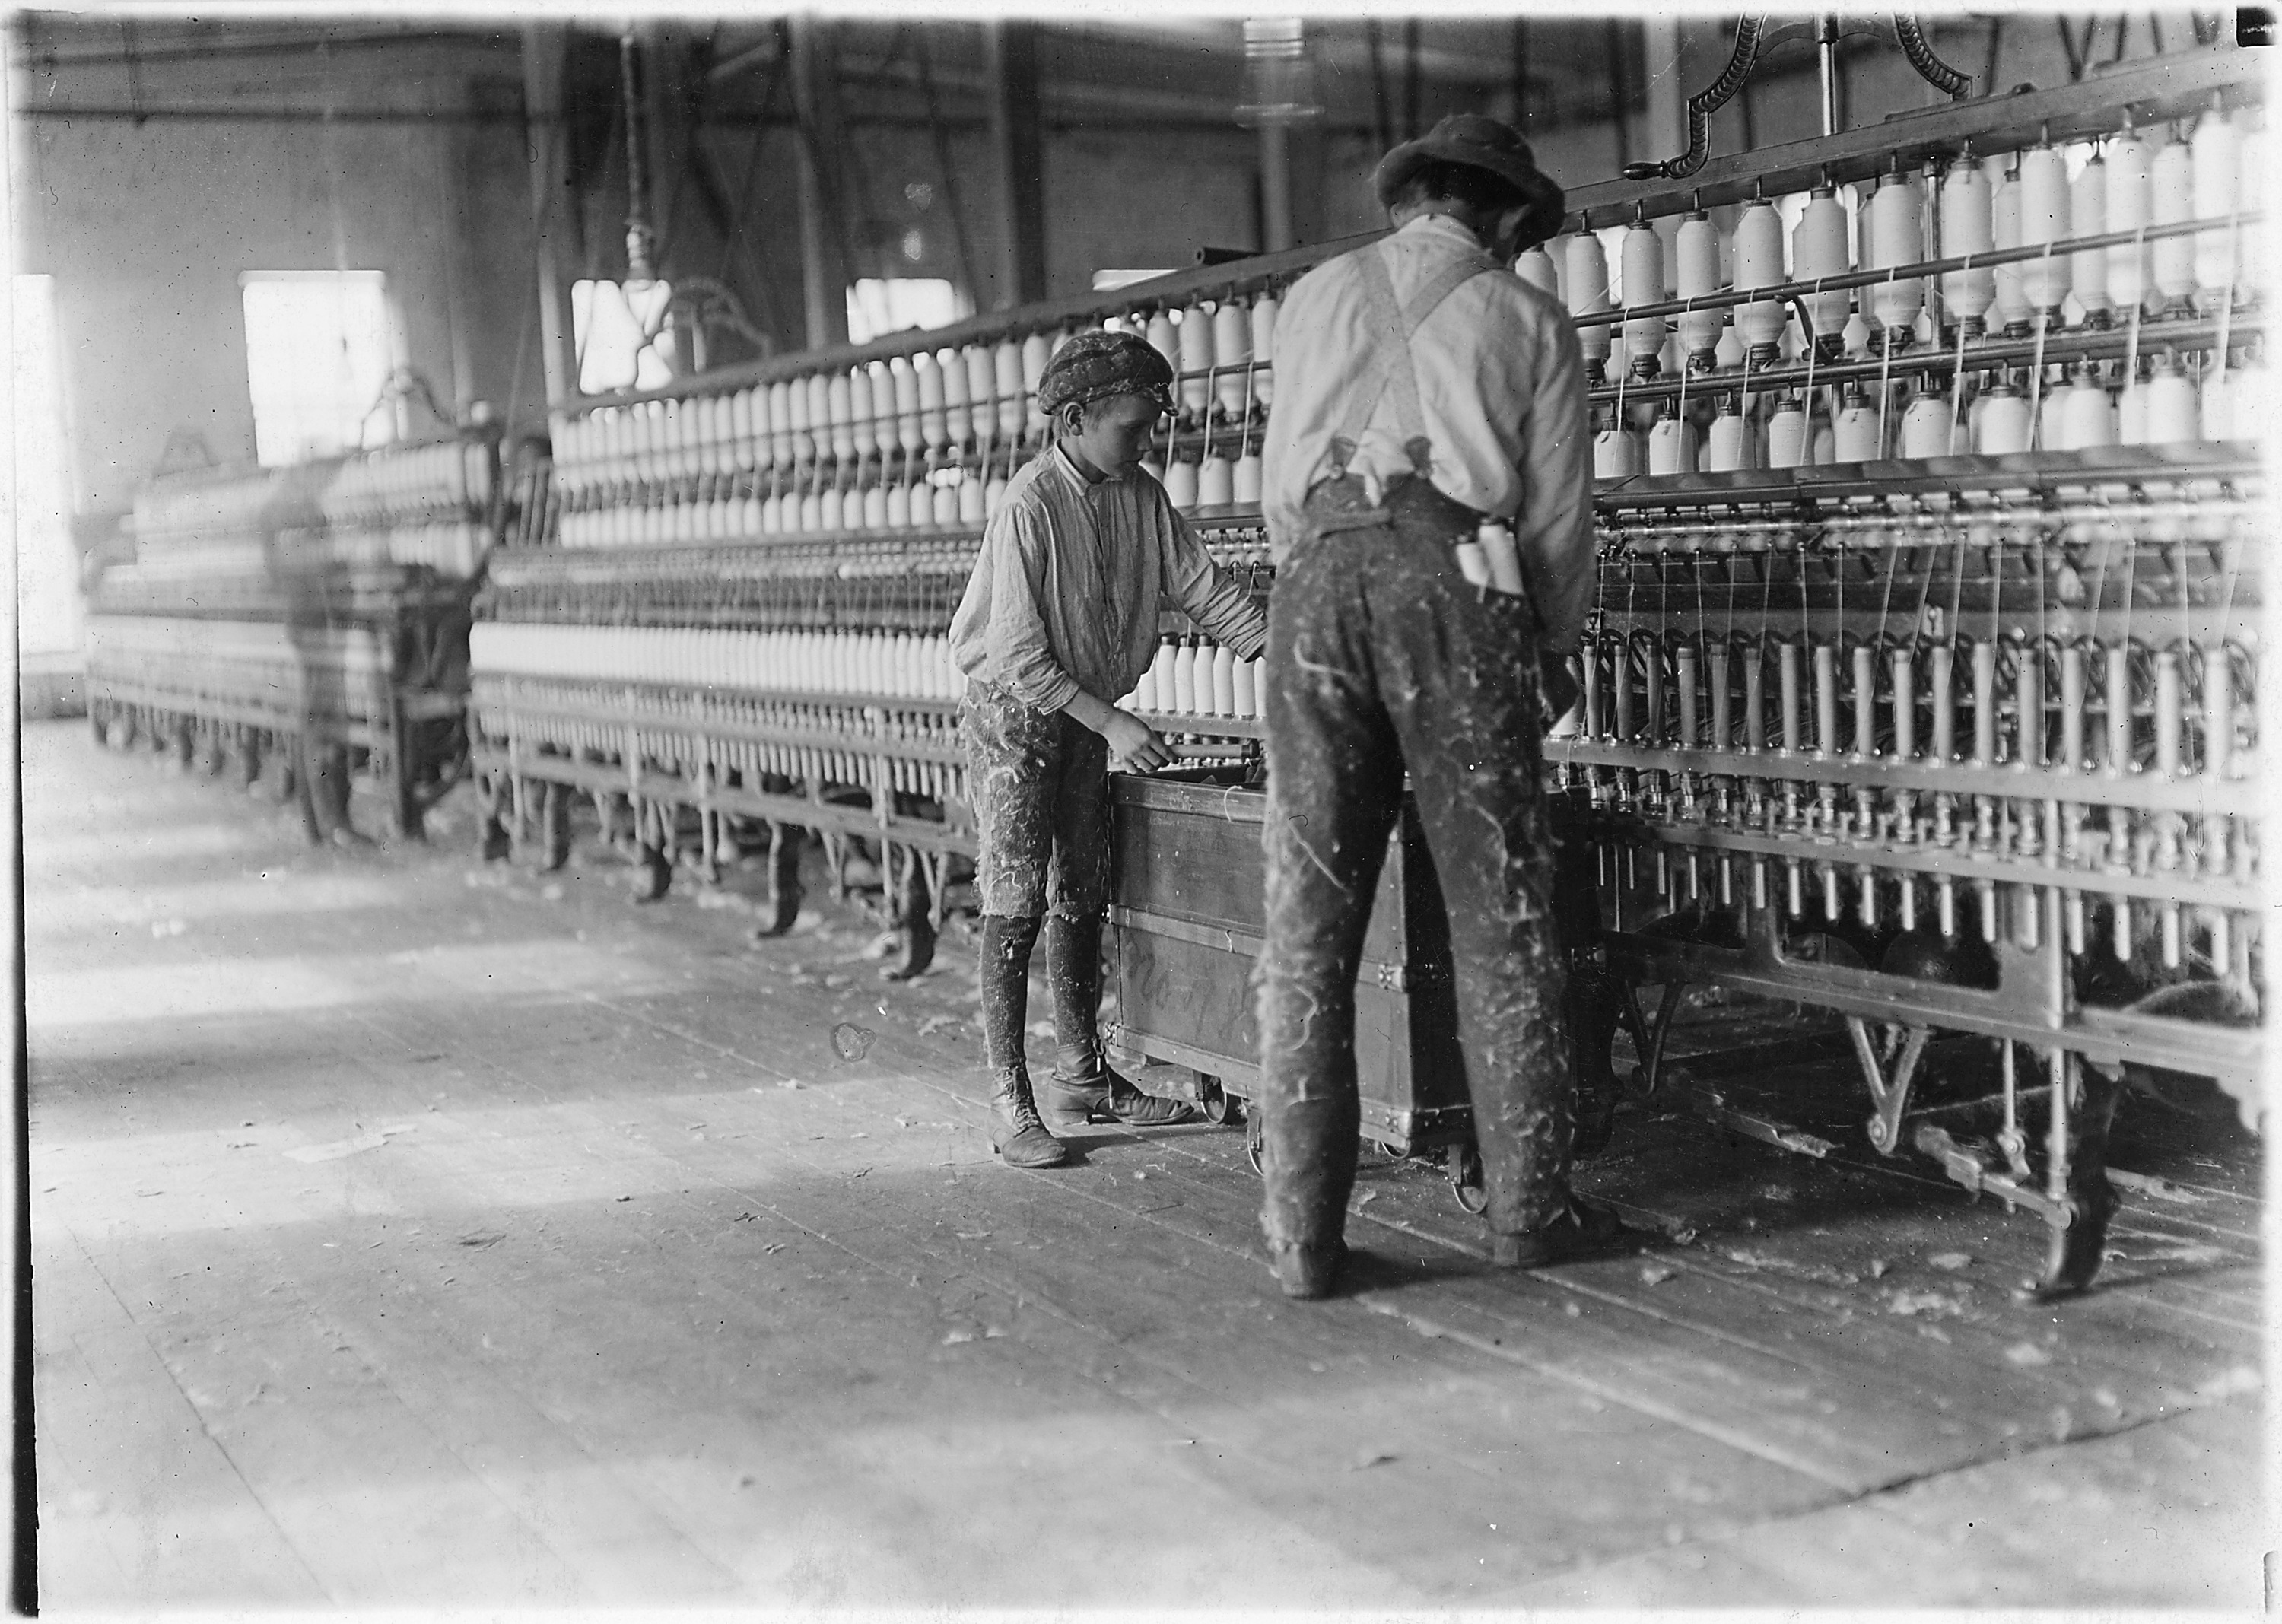 Industrial Revolution Mills File:One of the doffer...